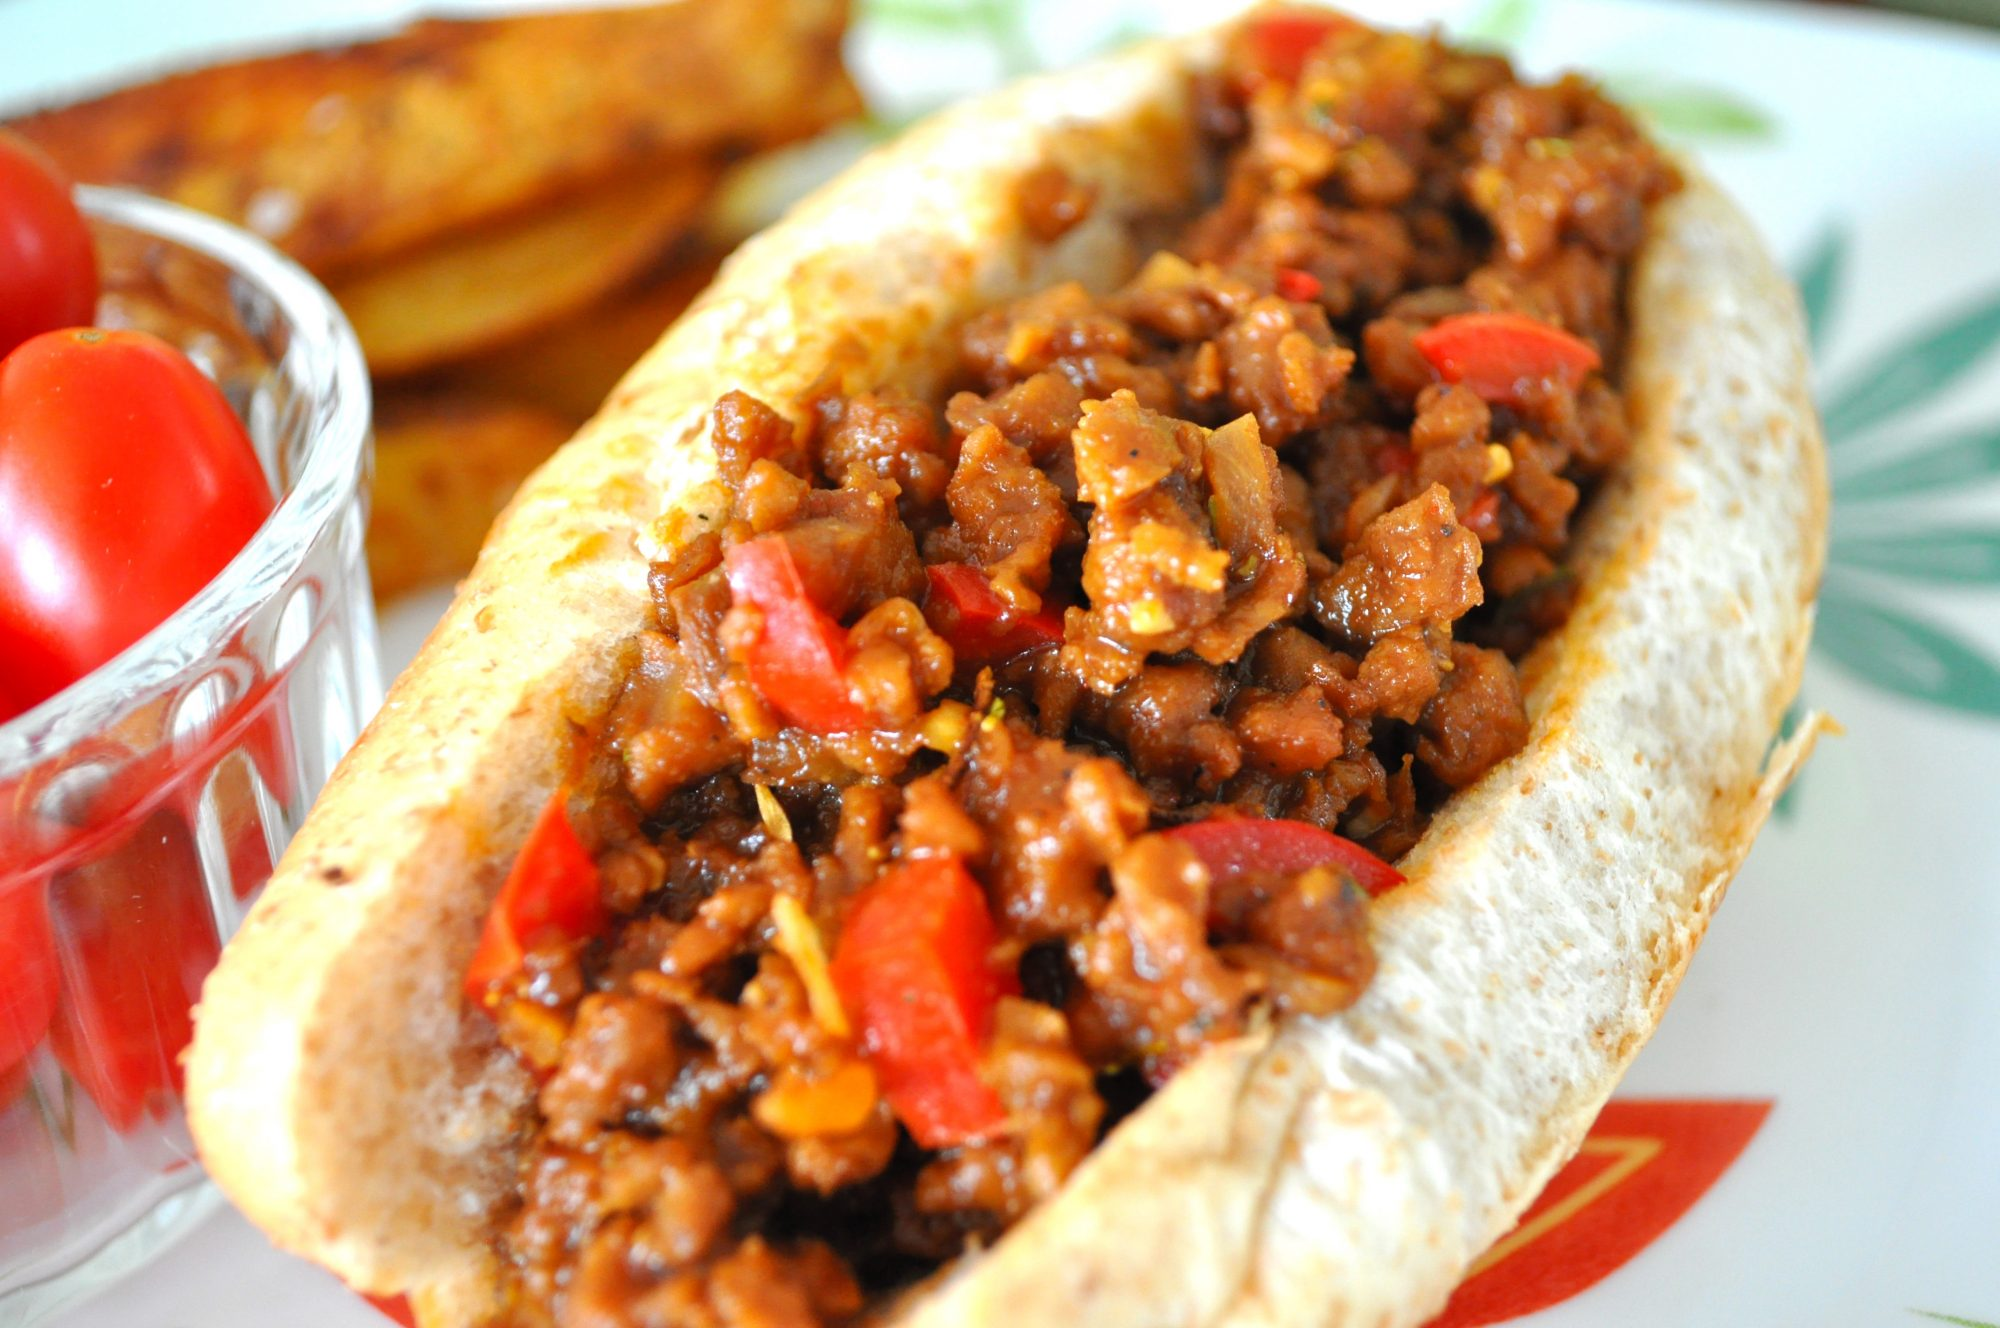 Vegetarian Sloppy Joes 163867 CCLoves2bake 422585